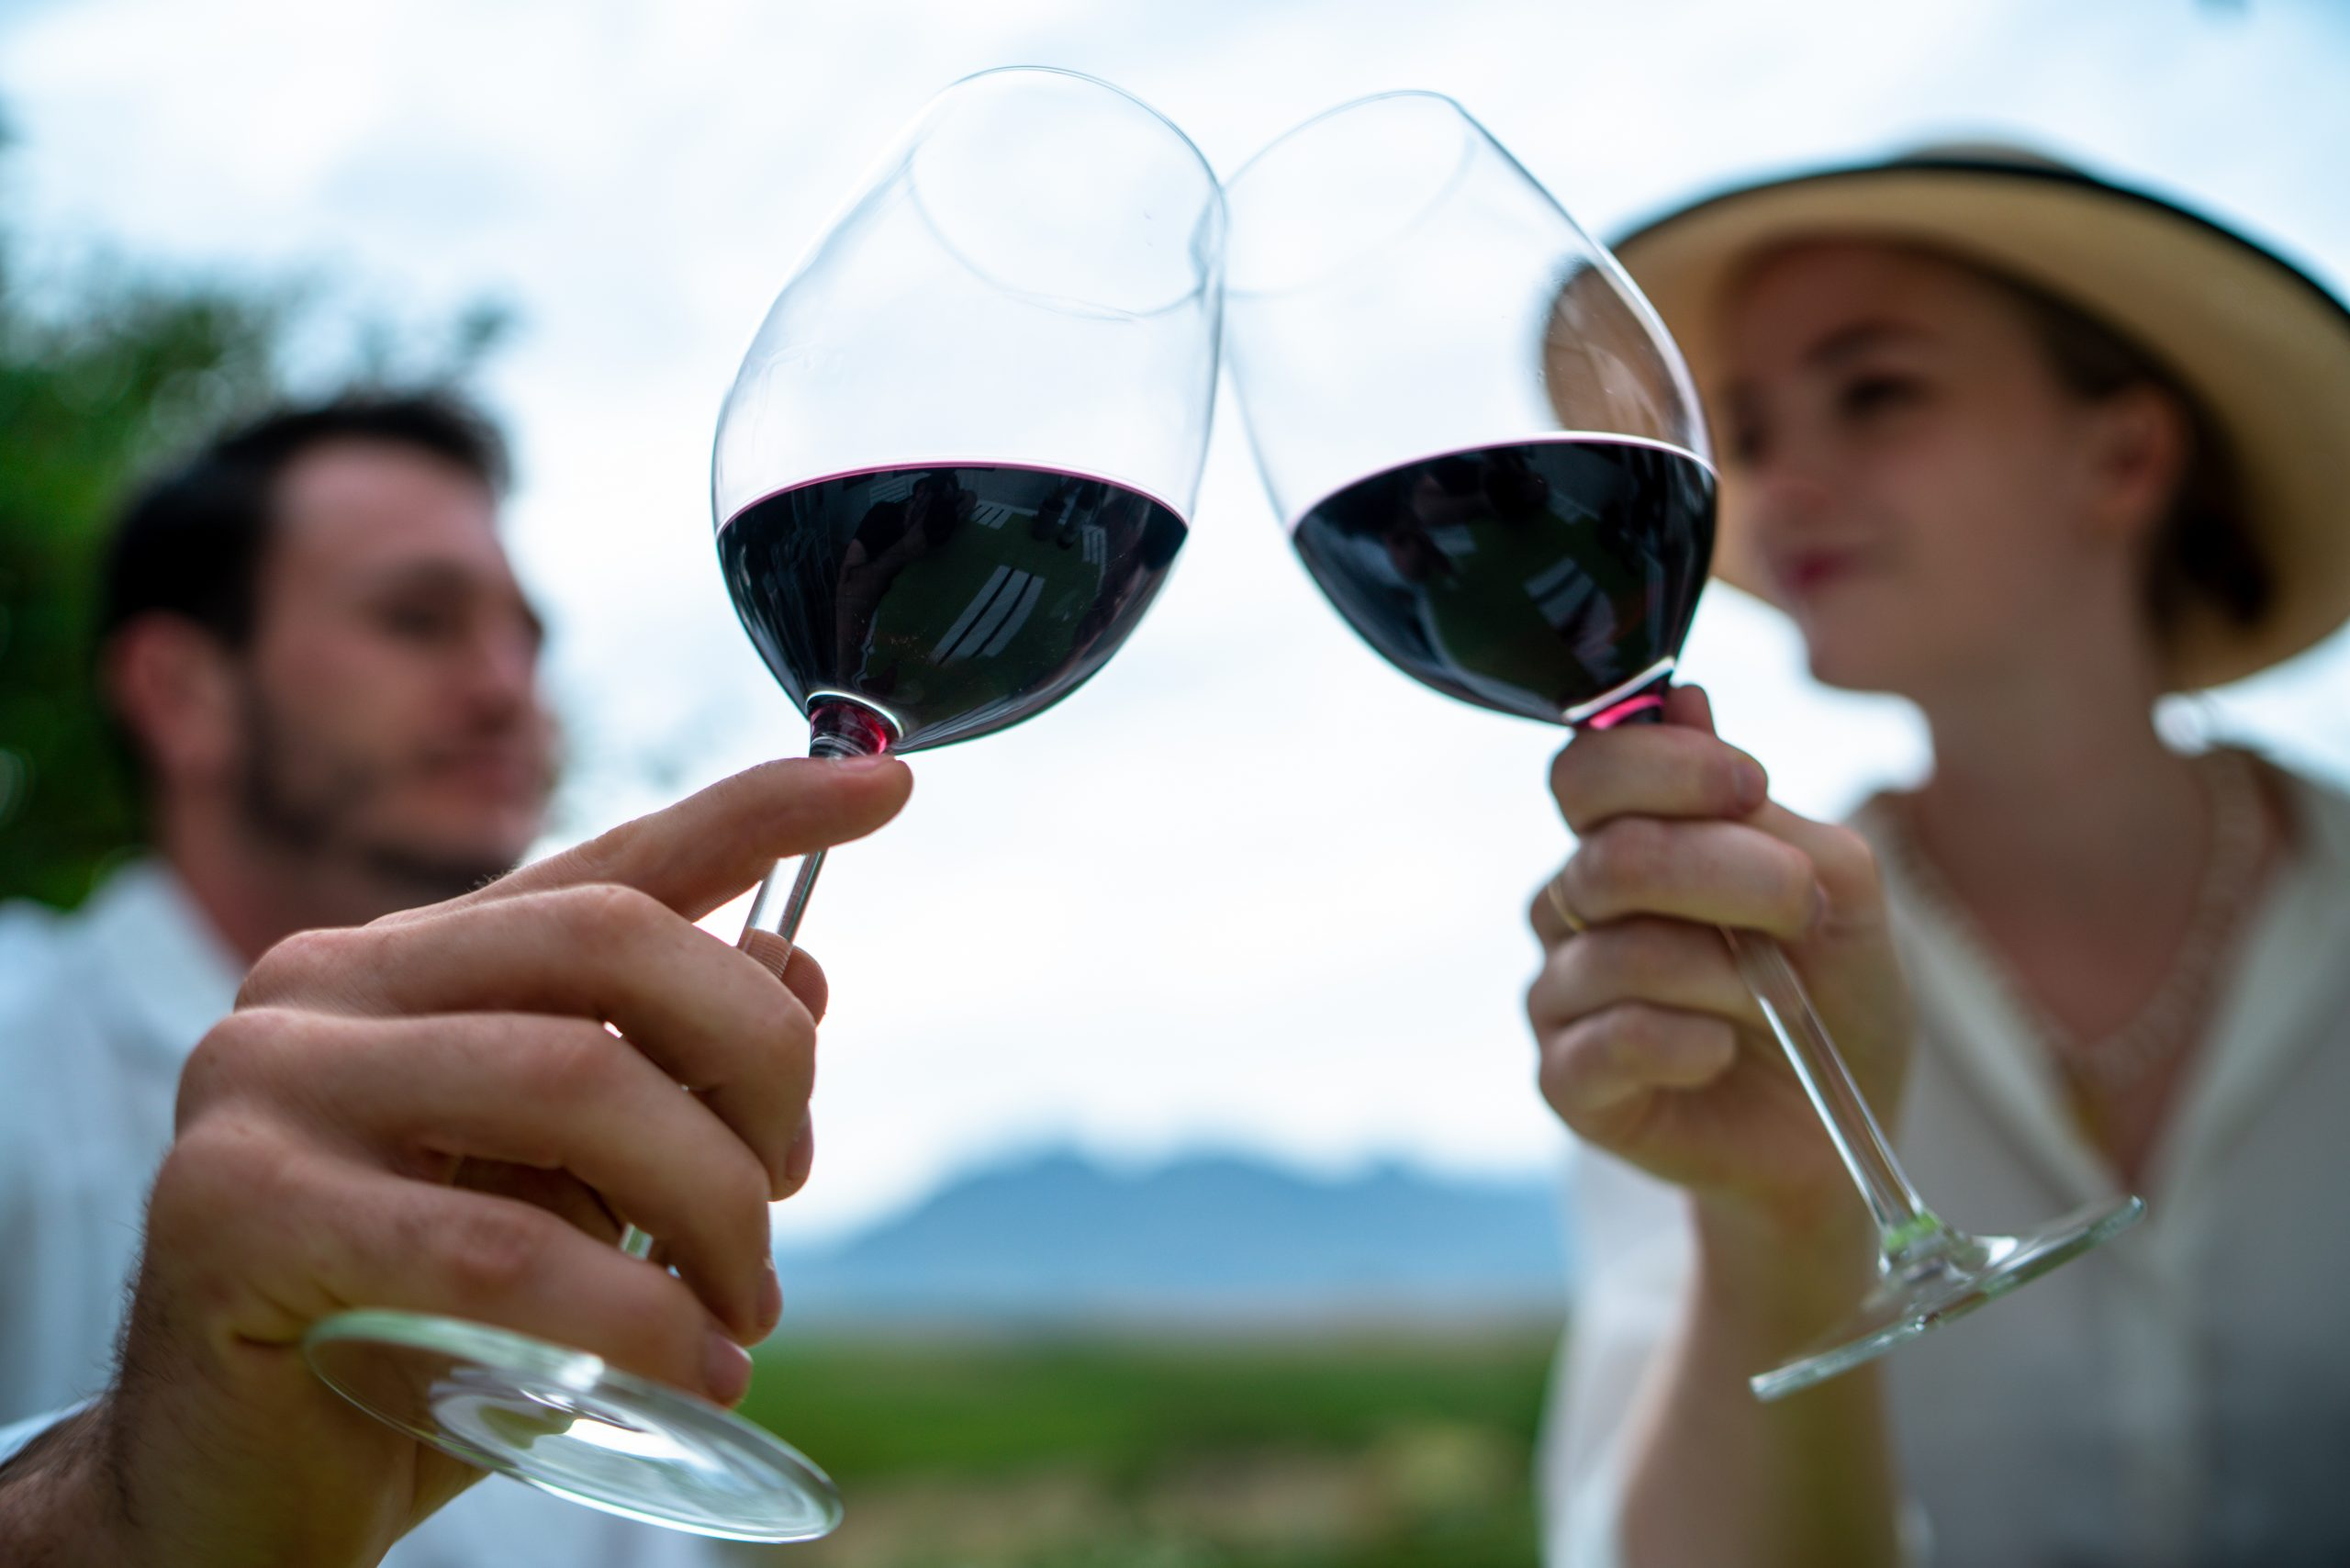 Wine & Food Tourism Conference To Bring World-Class Expertise Directly To Delegates